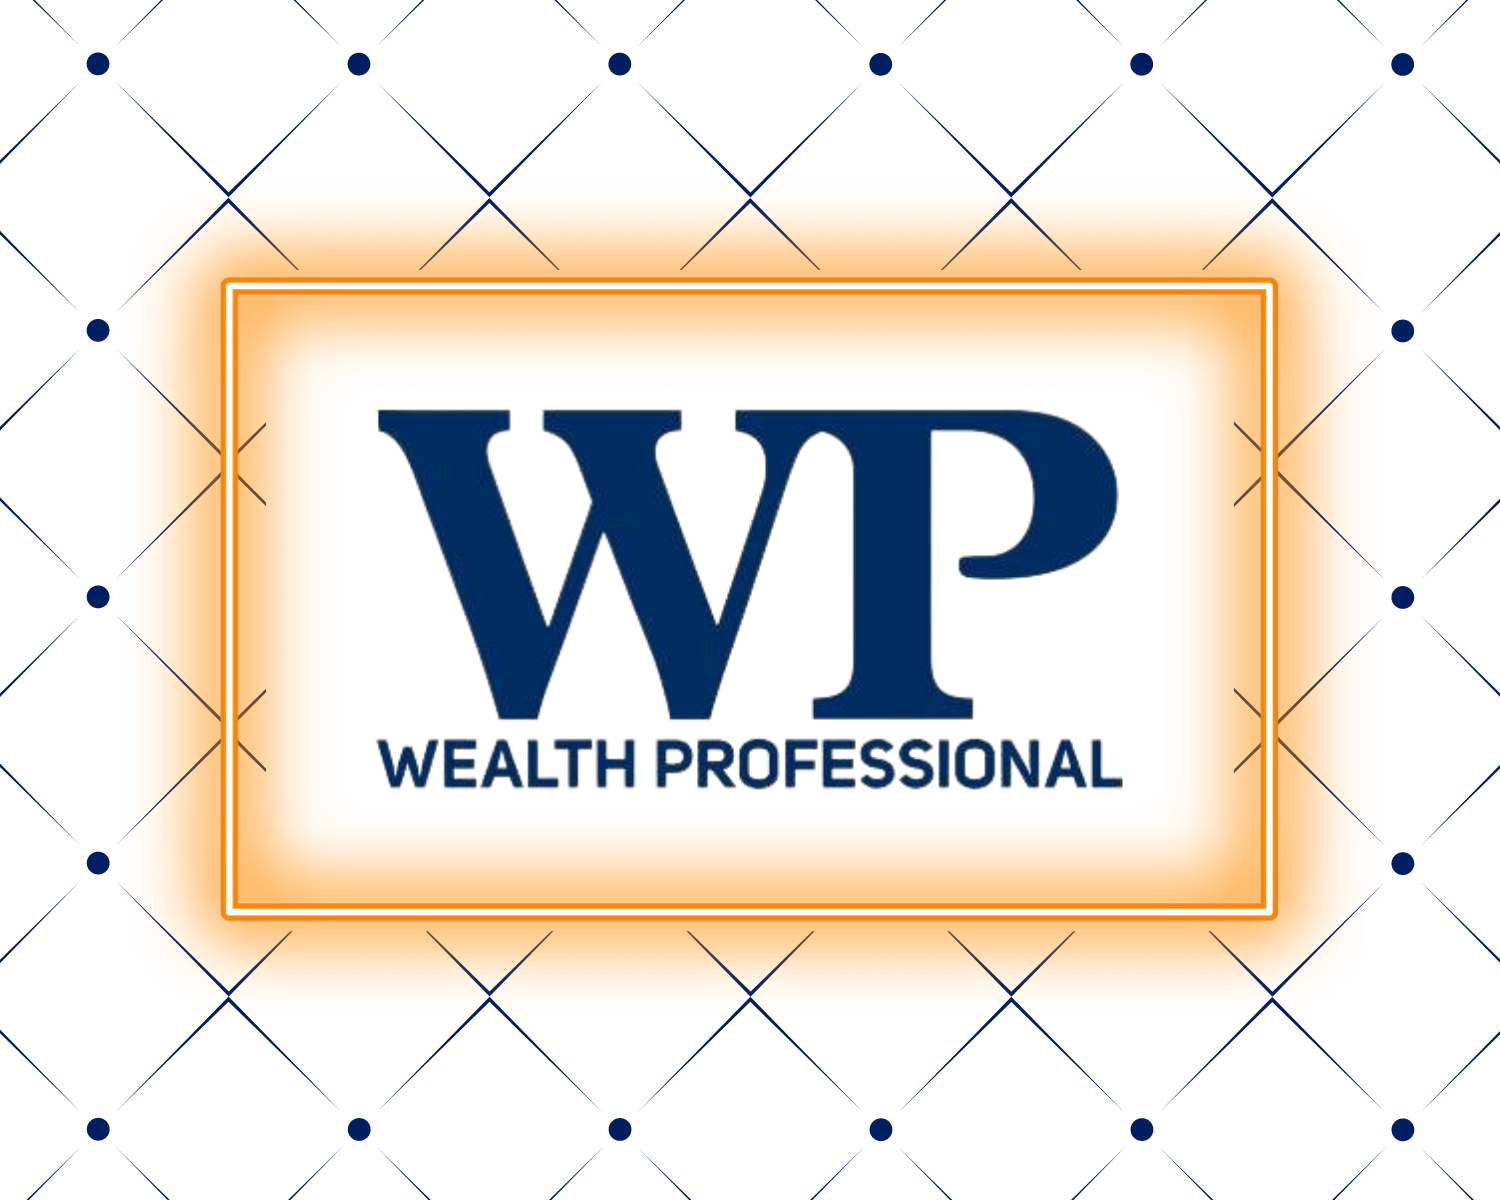 Wealth Professional Article: Getting Canadians Invested in Their Financial Future